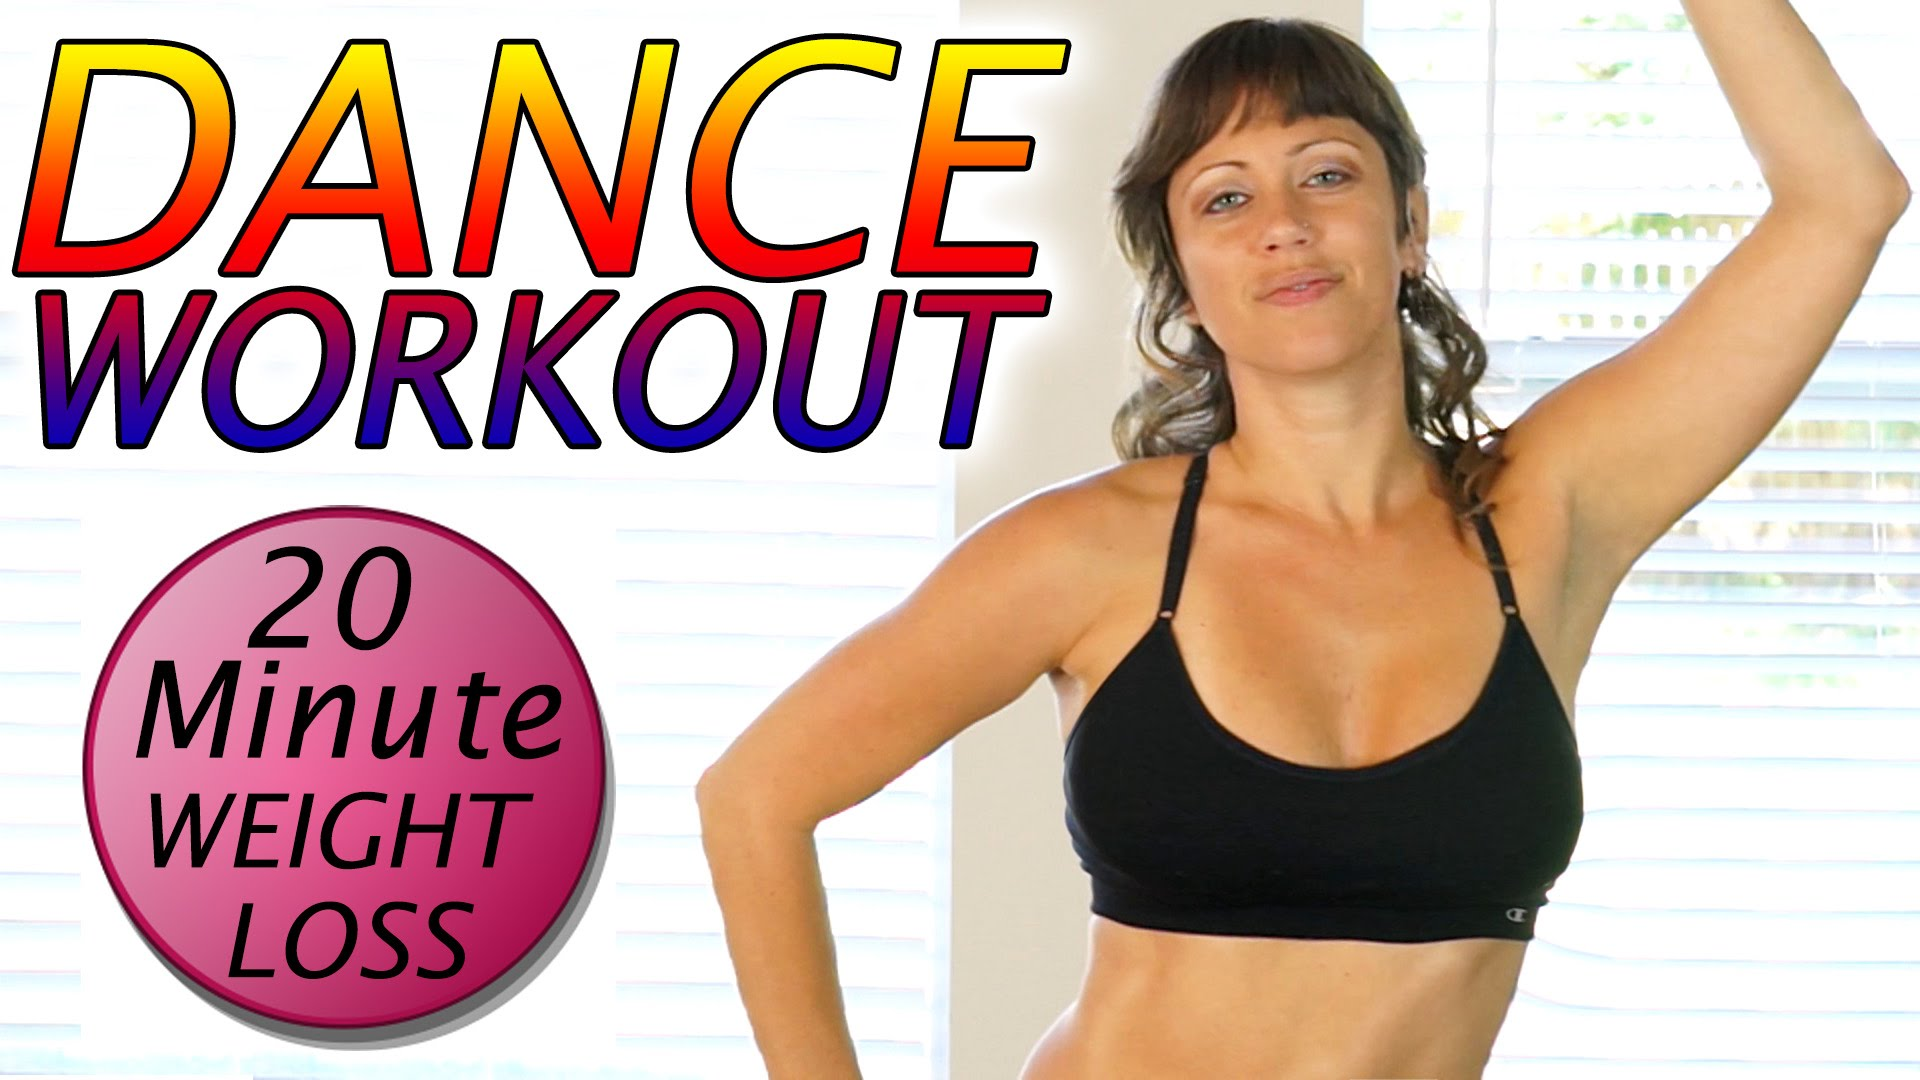 Dance Workout For Beginners at Home Cardio Weight Loss Aerobic Exercises